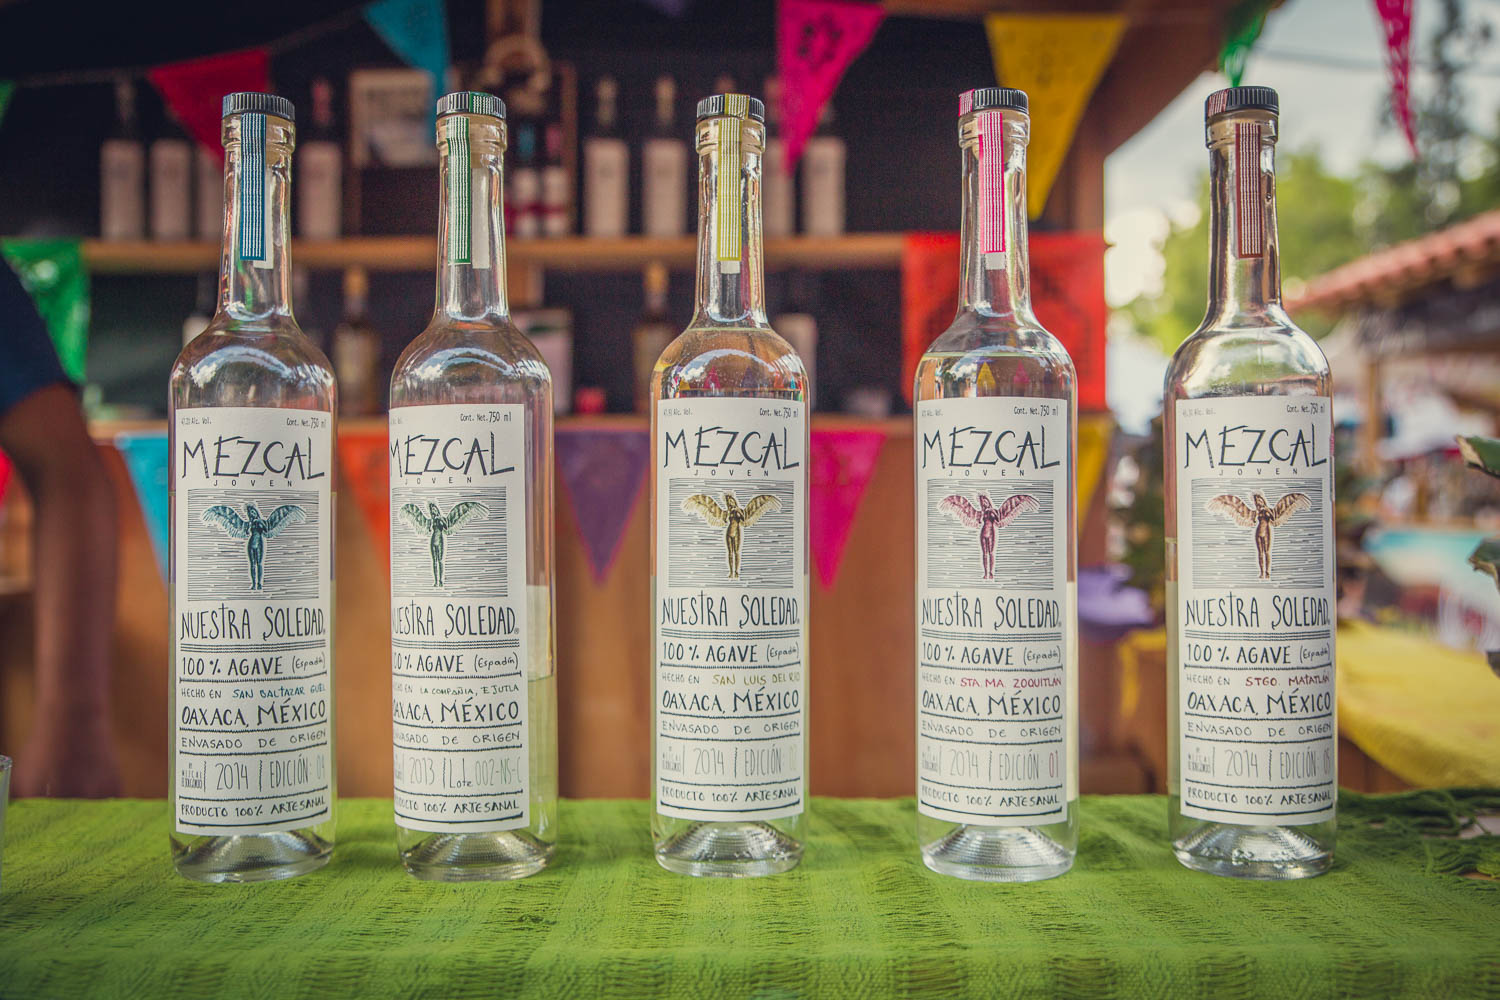 No shortage of Mezcal to sample in these parts…